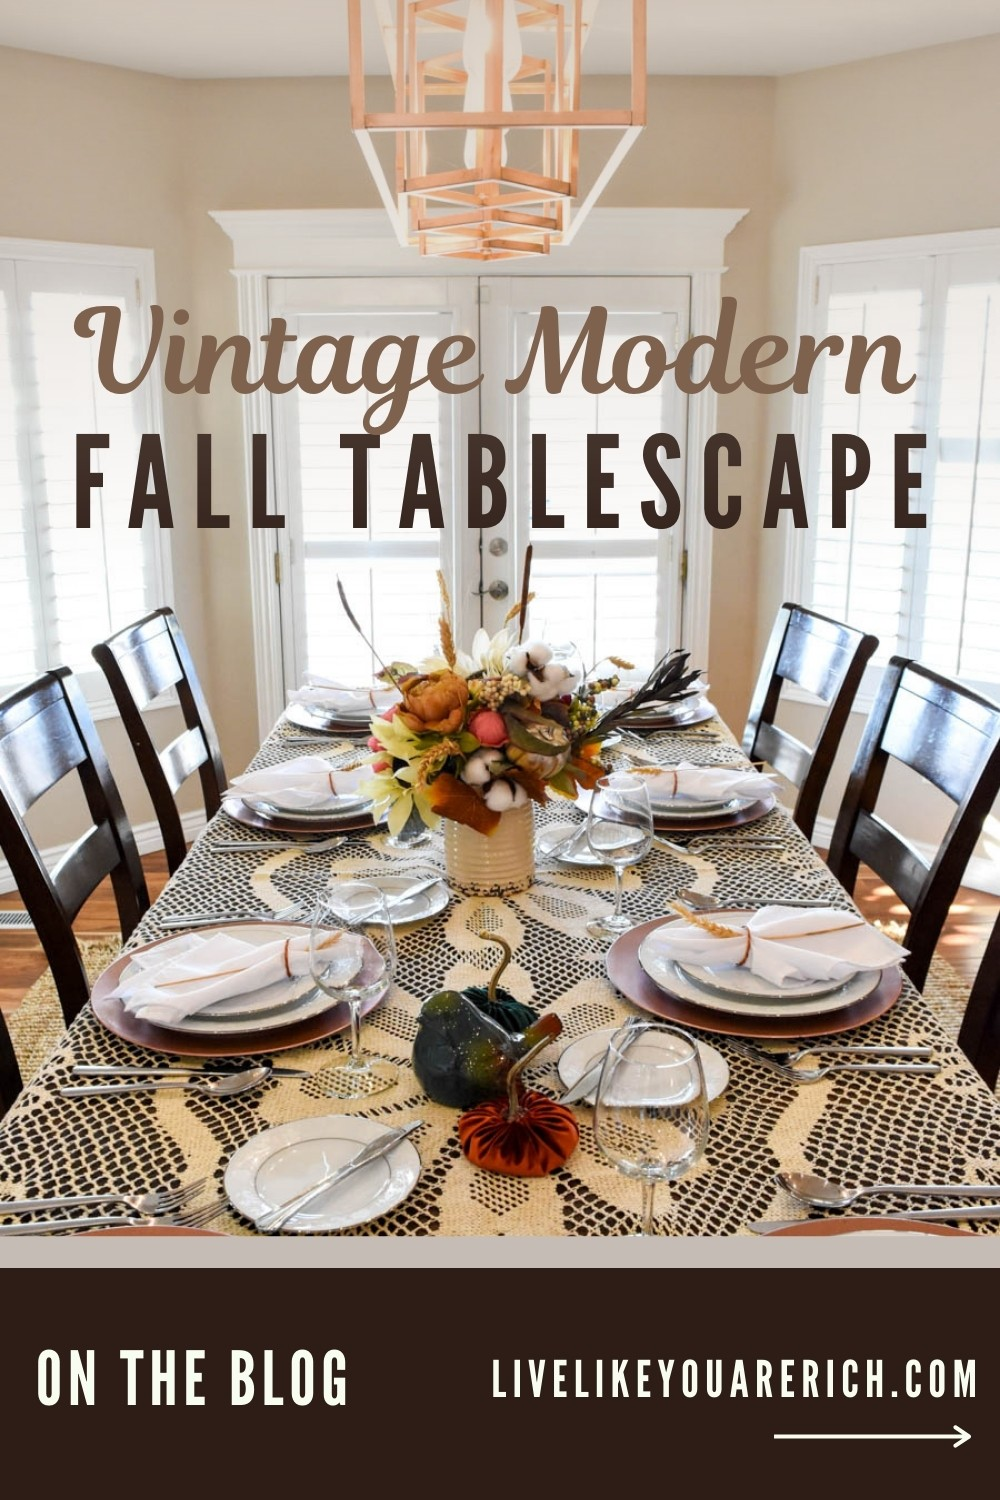 This vintage modern fall tablescape is a combination of a style of decorating when one mixes and decorates with old style and new style items. Together they create a fun and unique look that is called vintage modern.